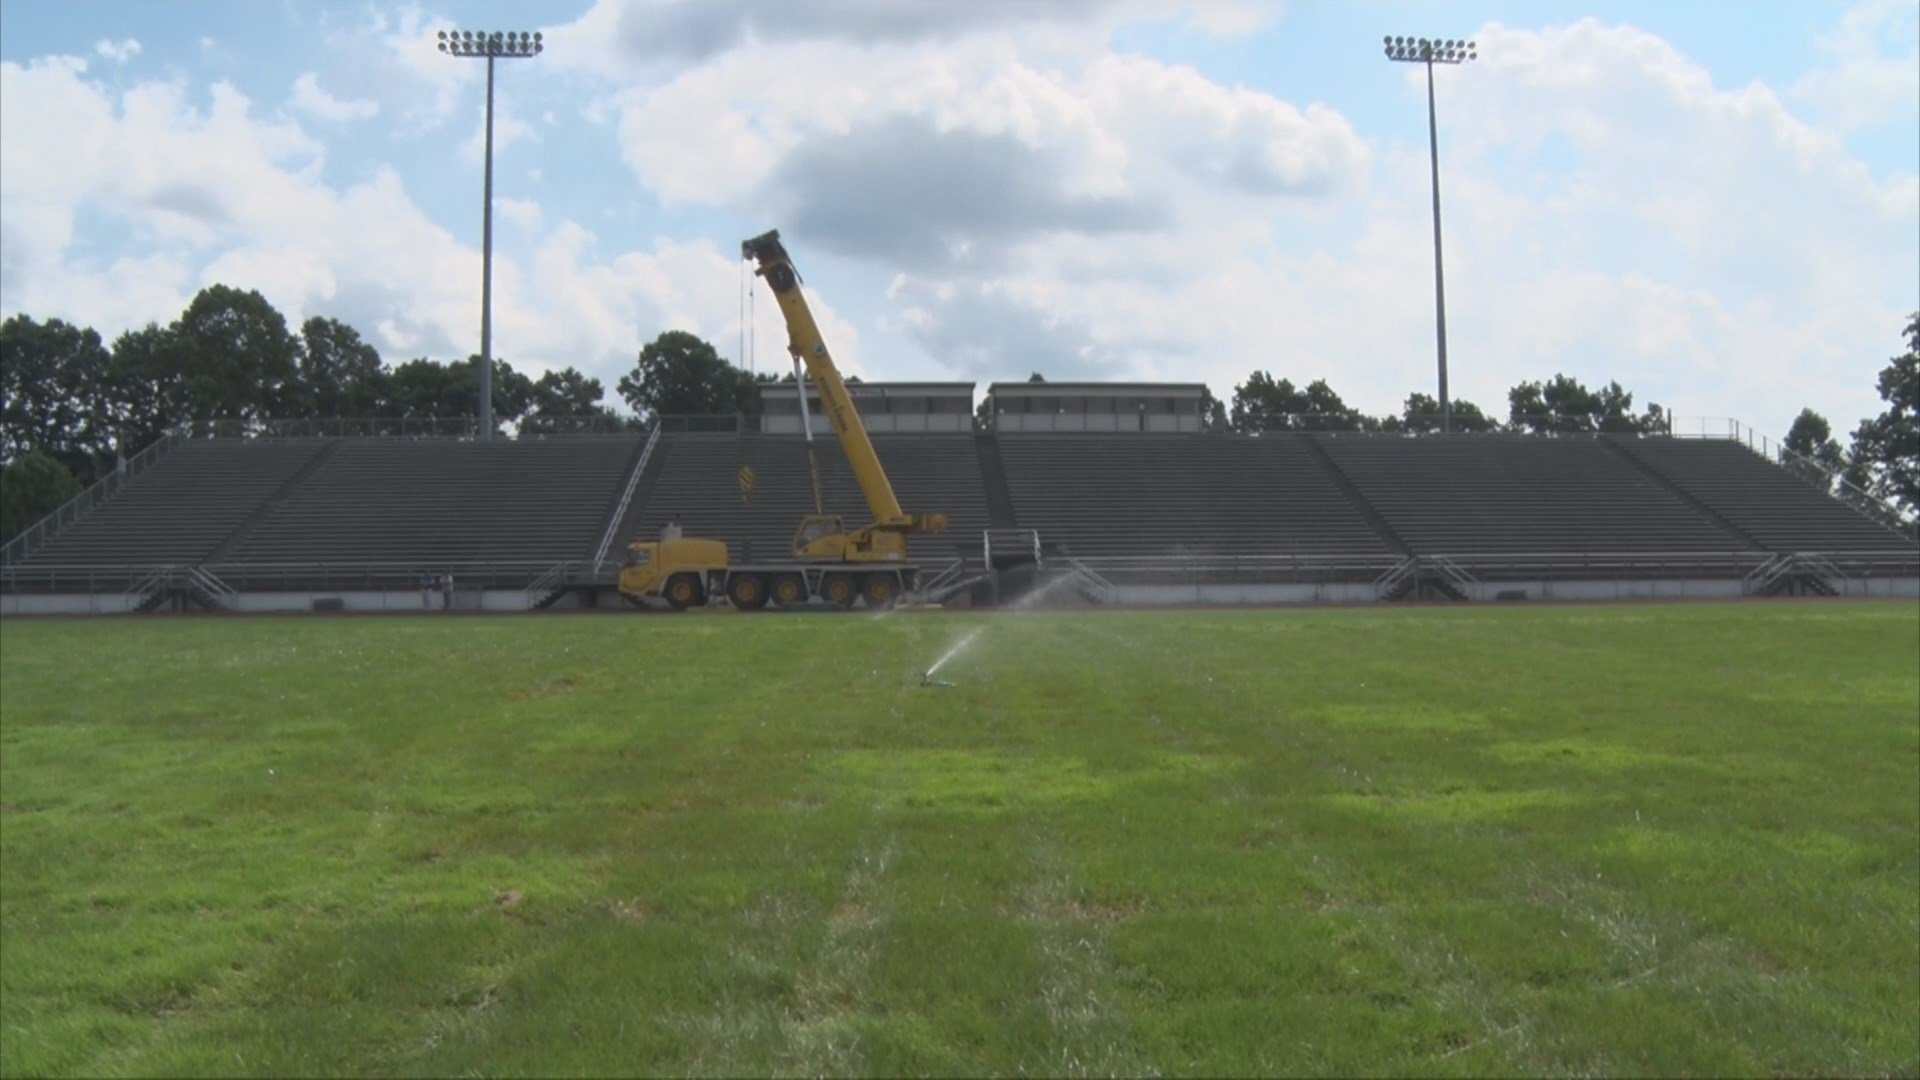 A construction crane sits in Van Meter Stadium, the home of the Flying Eagles and a new press box set to be completed by the end of next week.